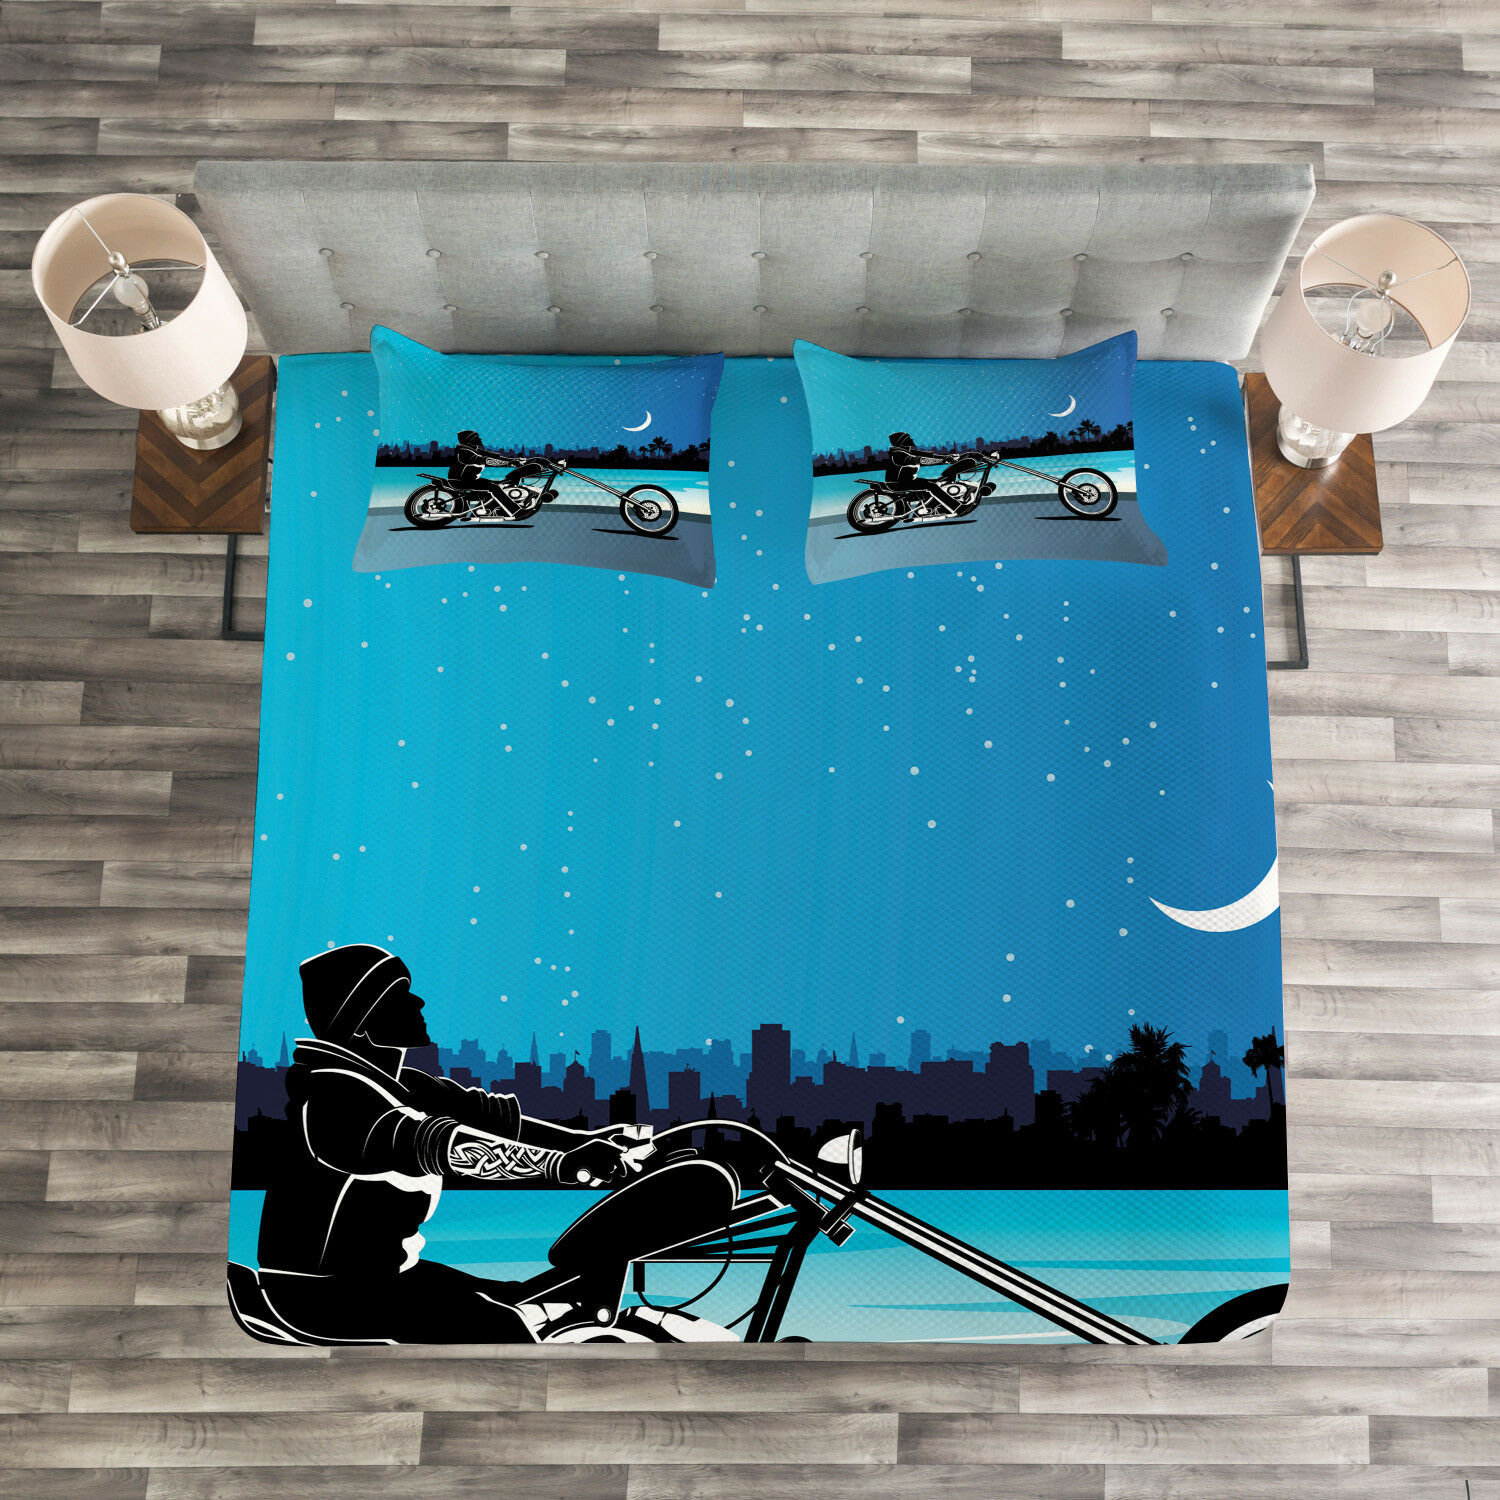 Navy Blau Quilted Bedspread & Pillow Shams Set, Chopper Motorcycle Print